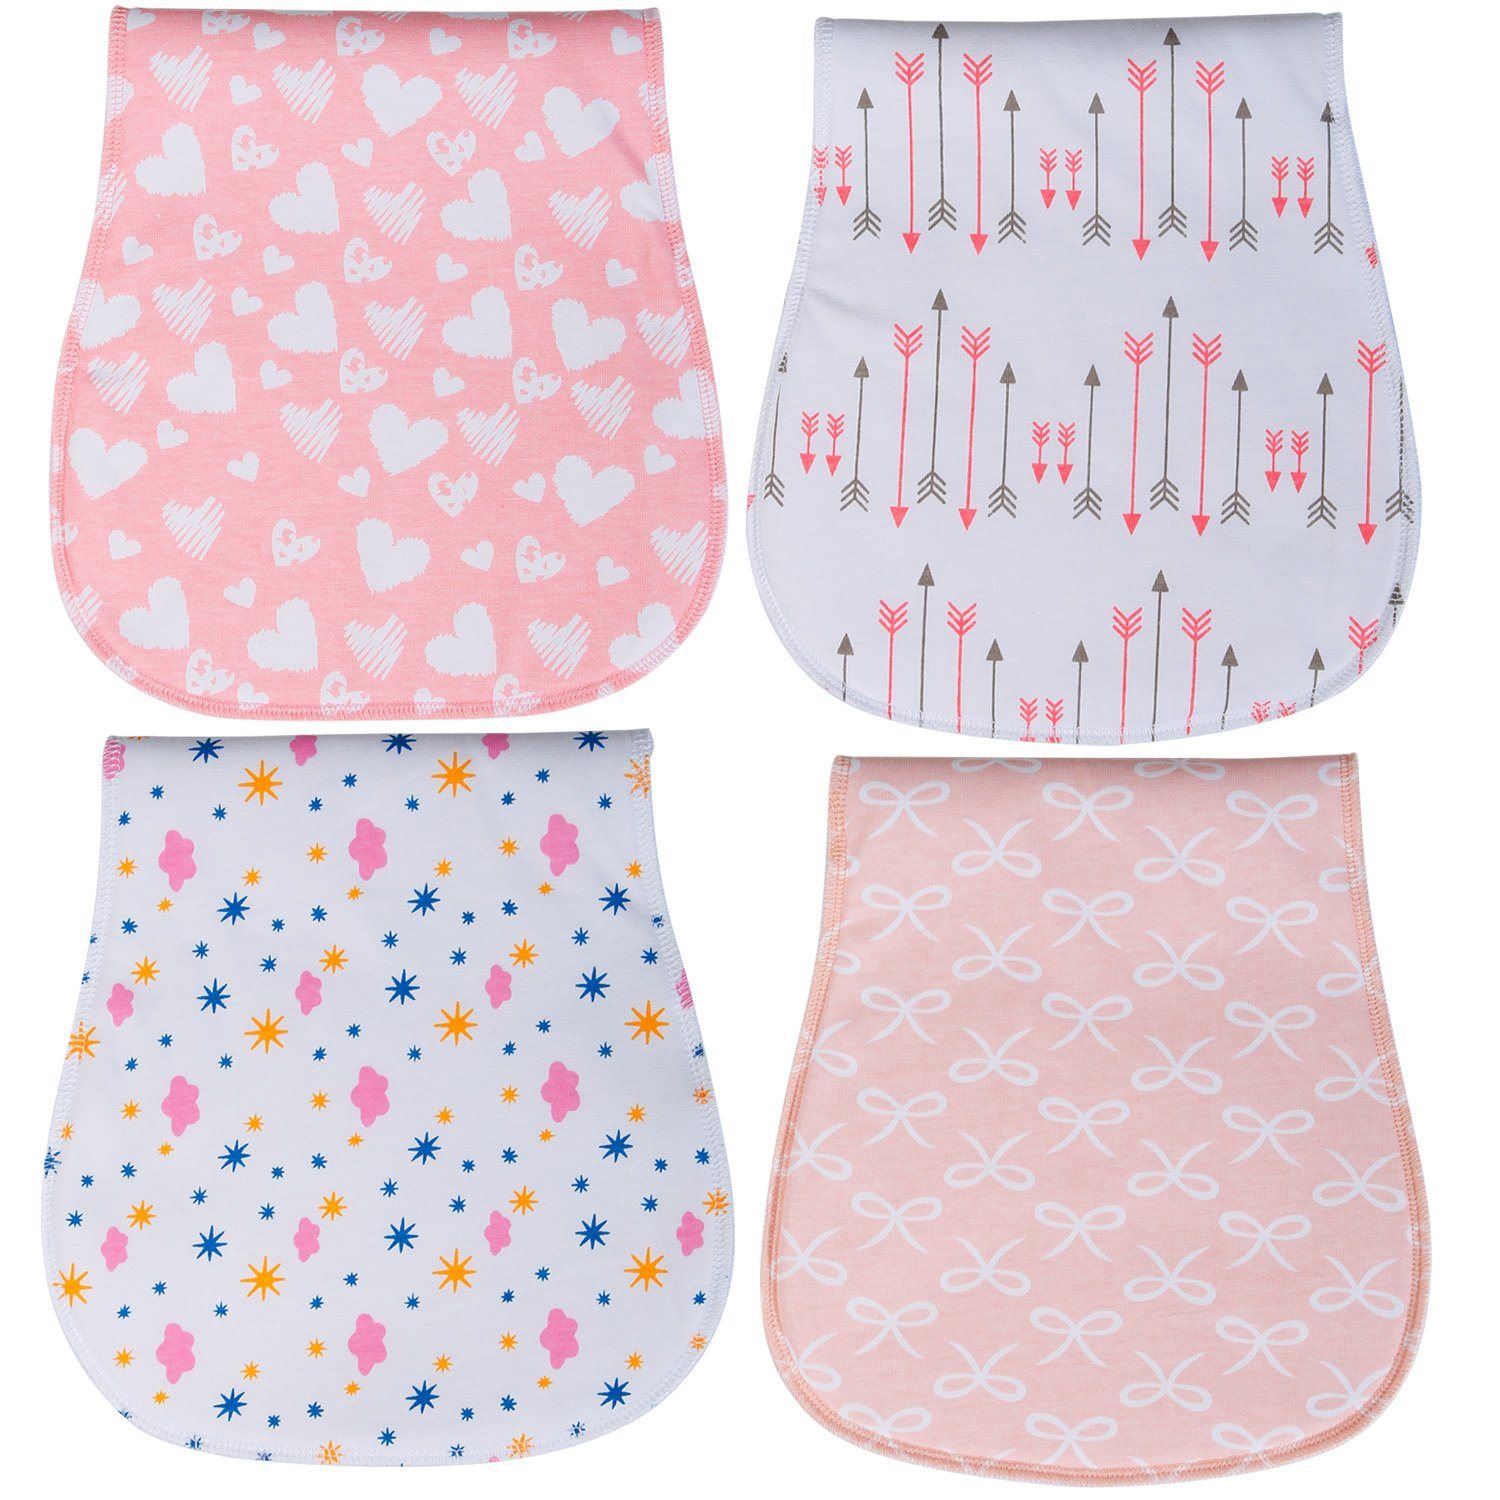 Baby Burp Cloths 3 Layer Burp Bibs Curved Soft and Absorbent for Girl 4 Pack Burping Towels by YOOFOSS by YOOFOSS